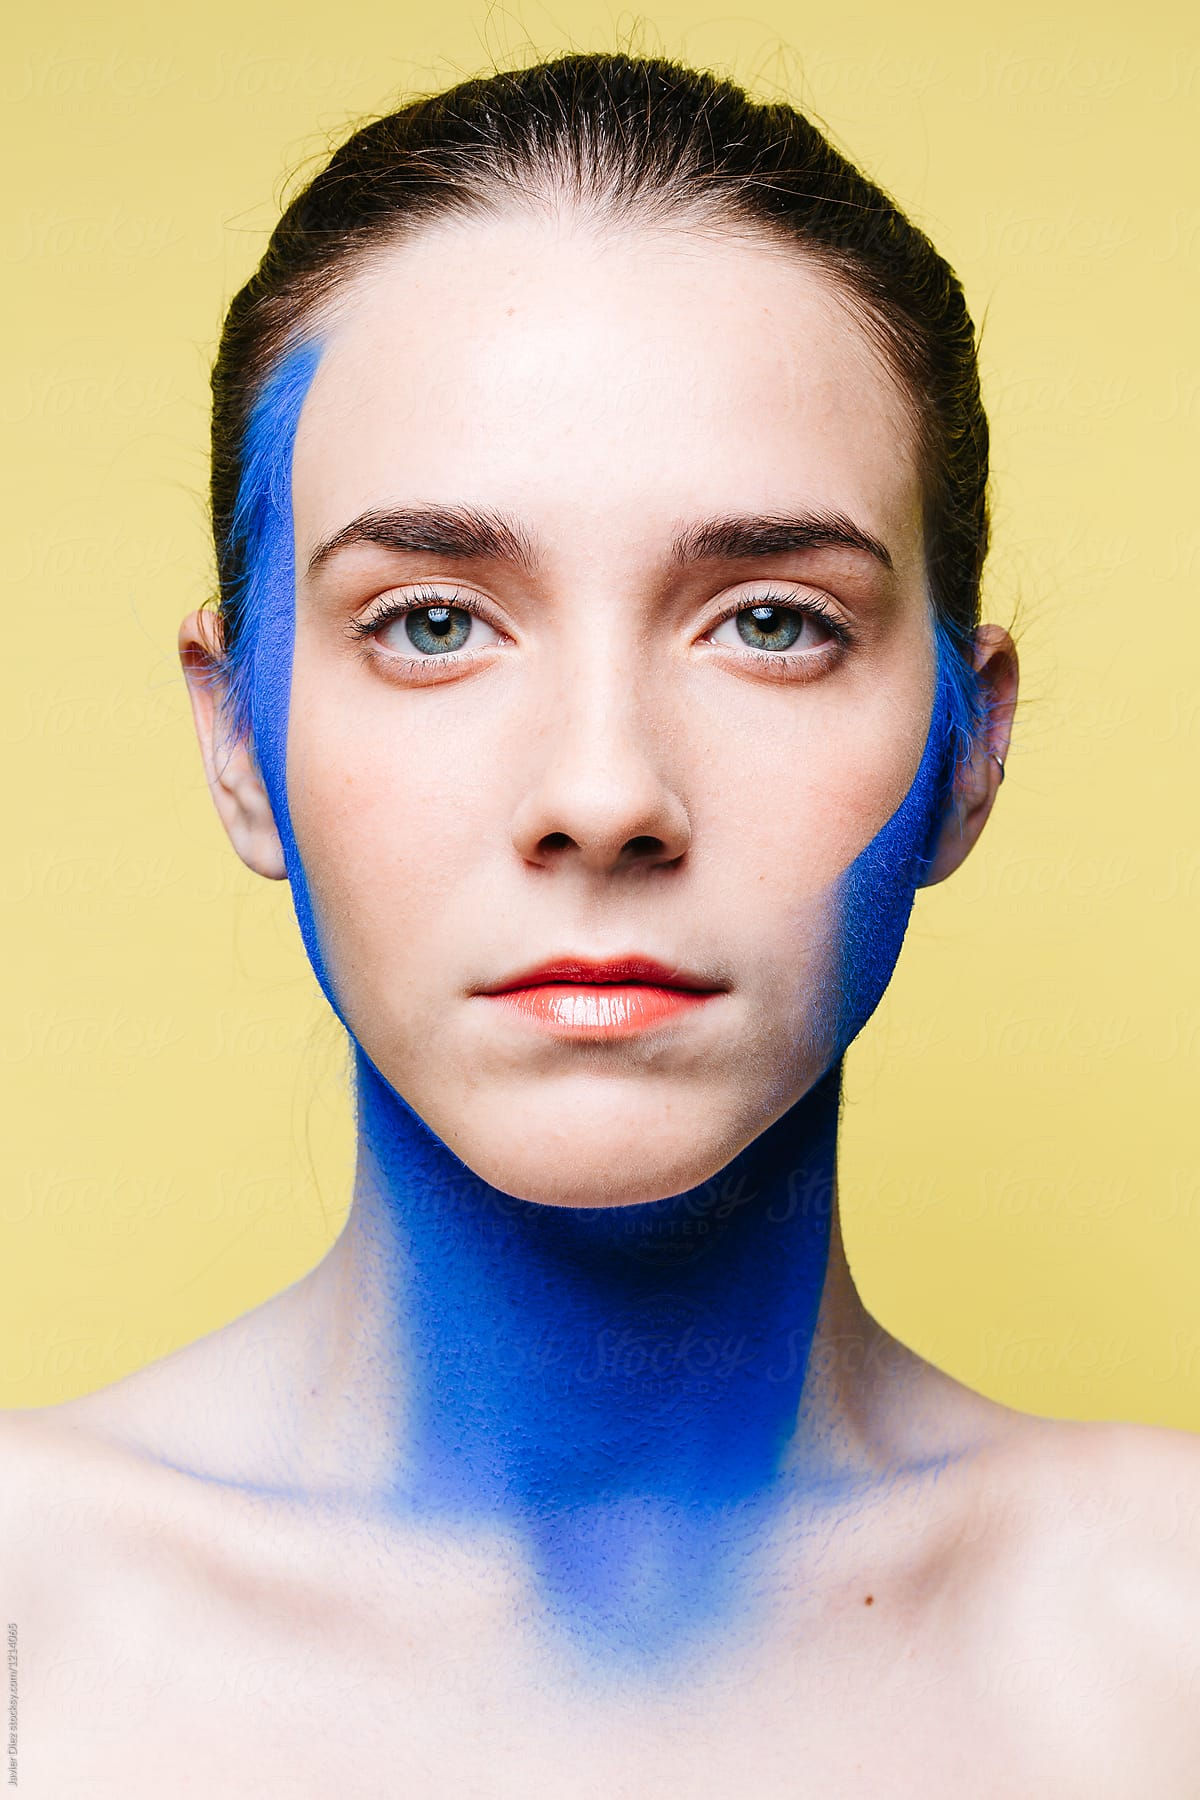 Female Model With Painted Neck And Face By Javier Diez Stocksy United